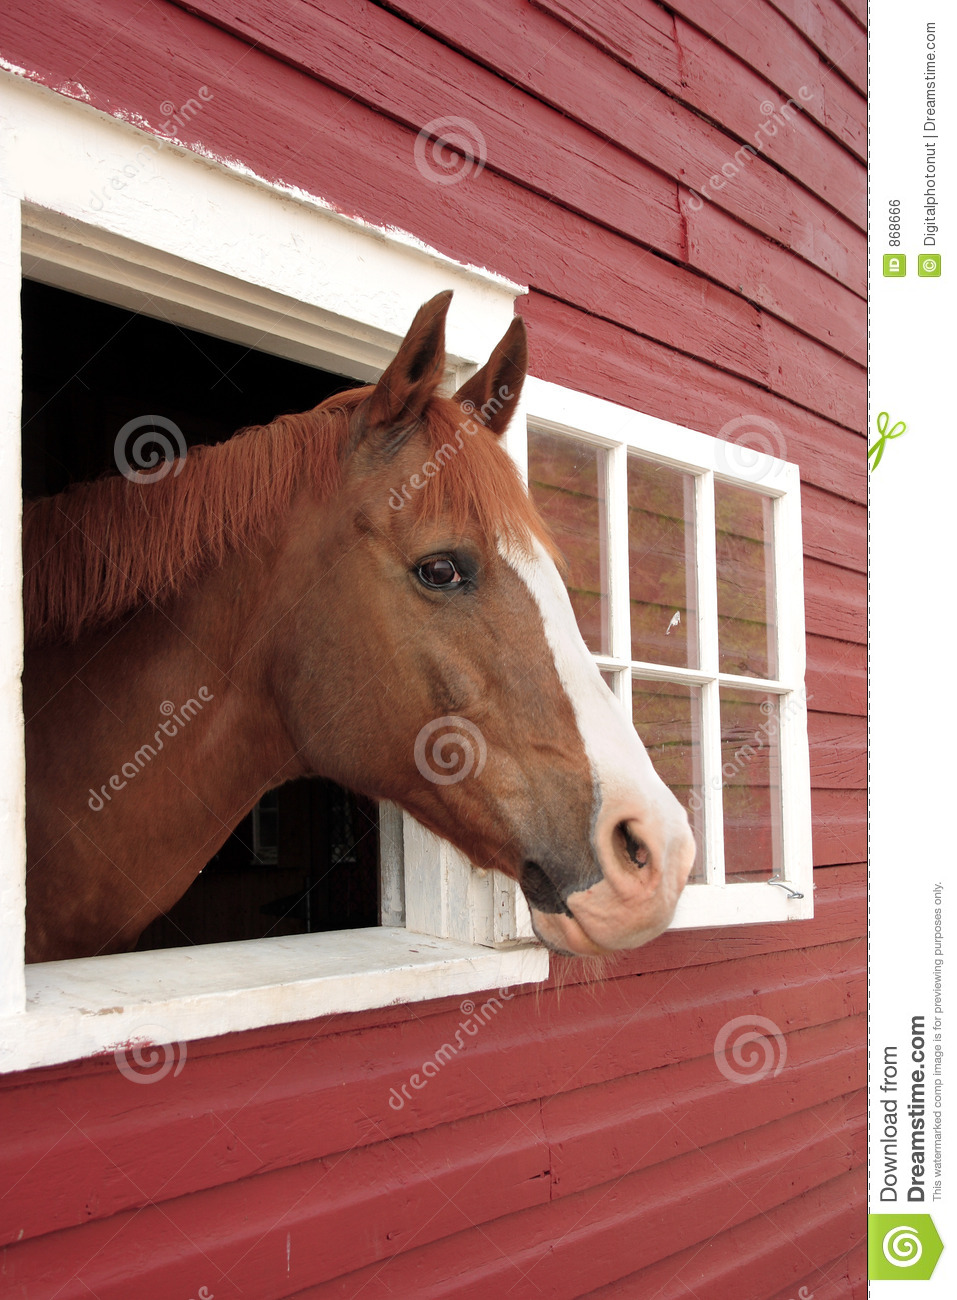 Horse looks out window royalty free stock image image for Window horses